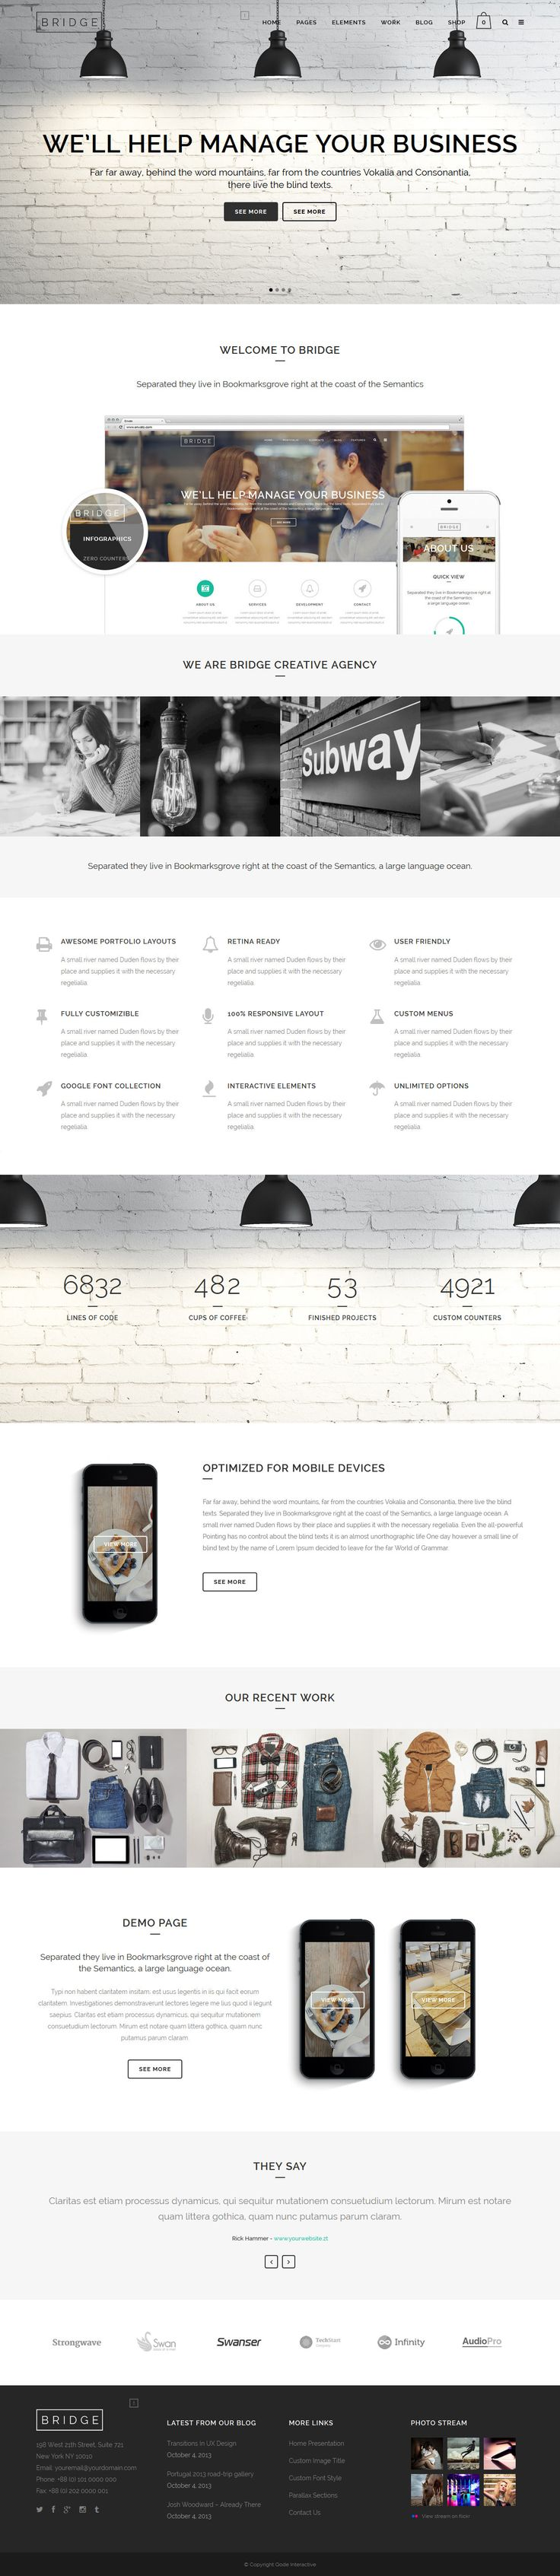 Bridge from ThemeForest - a cool wordpress theme.